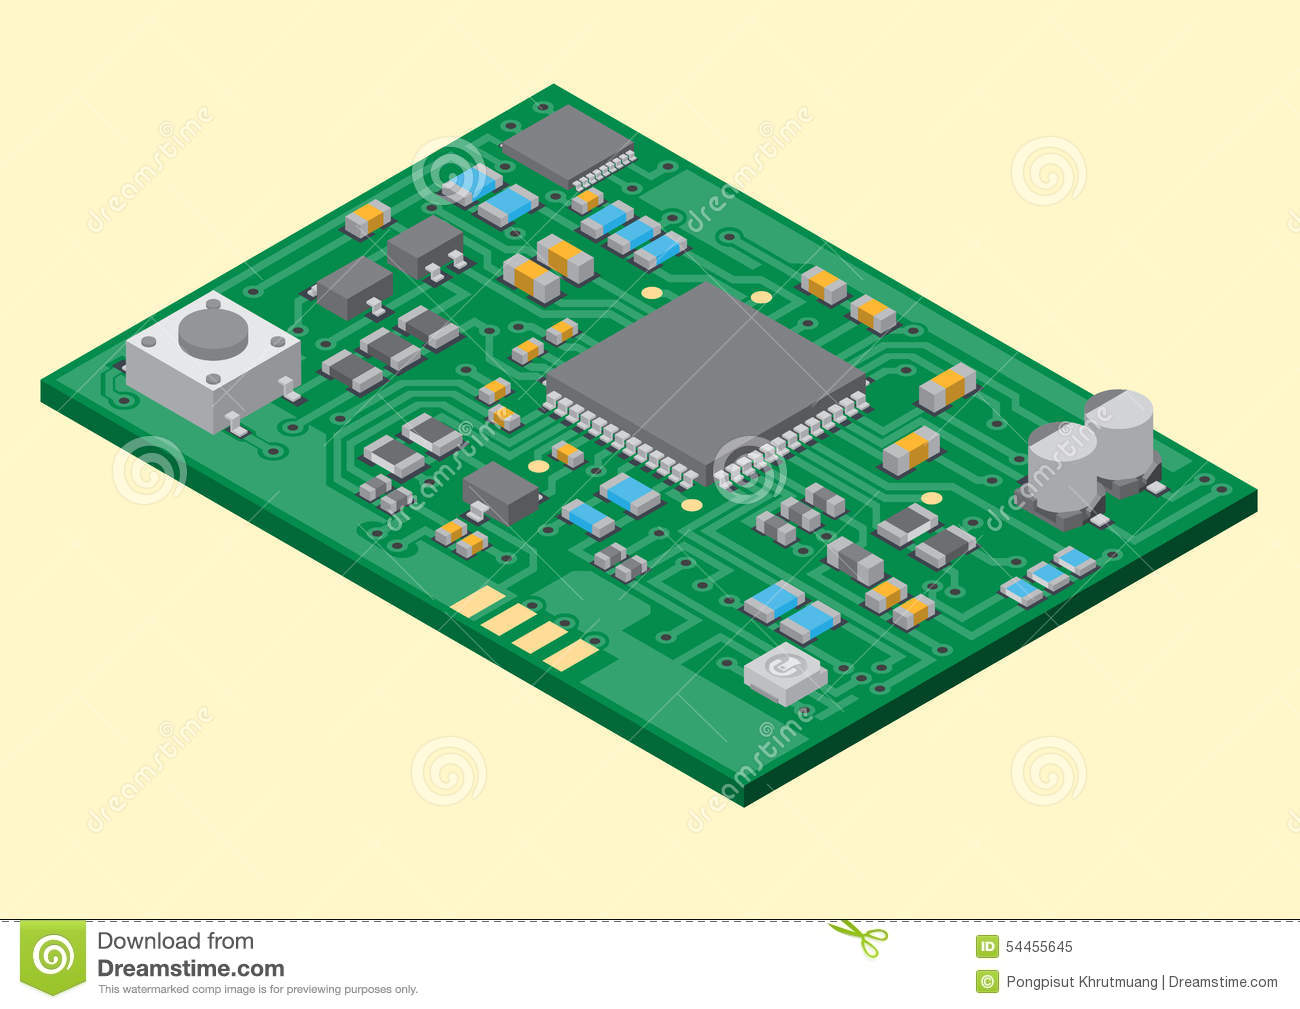 Printed Circuit Boards For Led Lighting Ourpcb